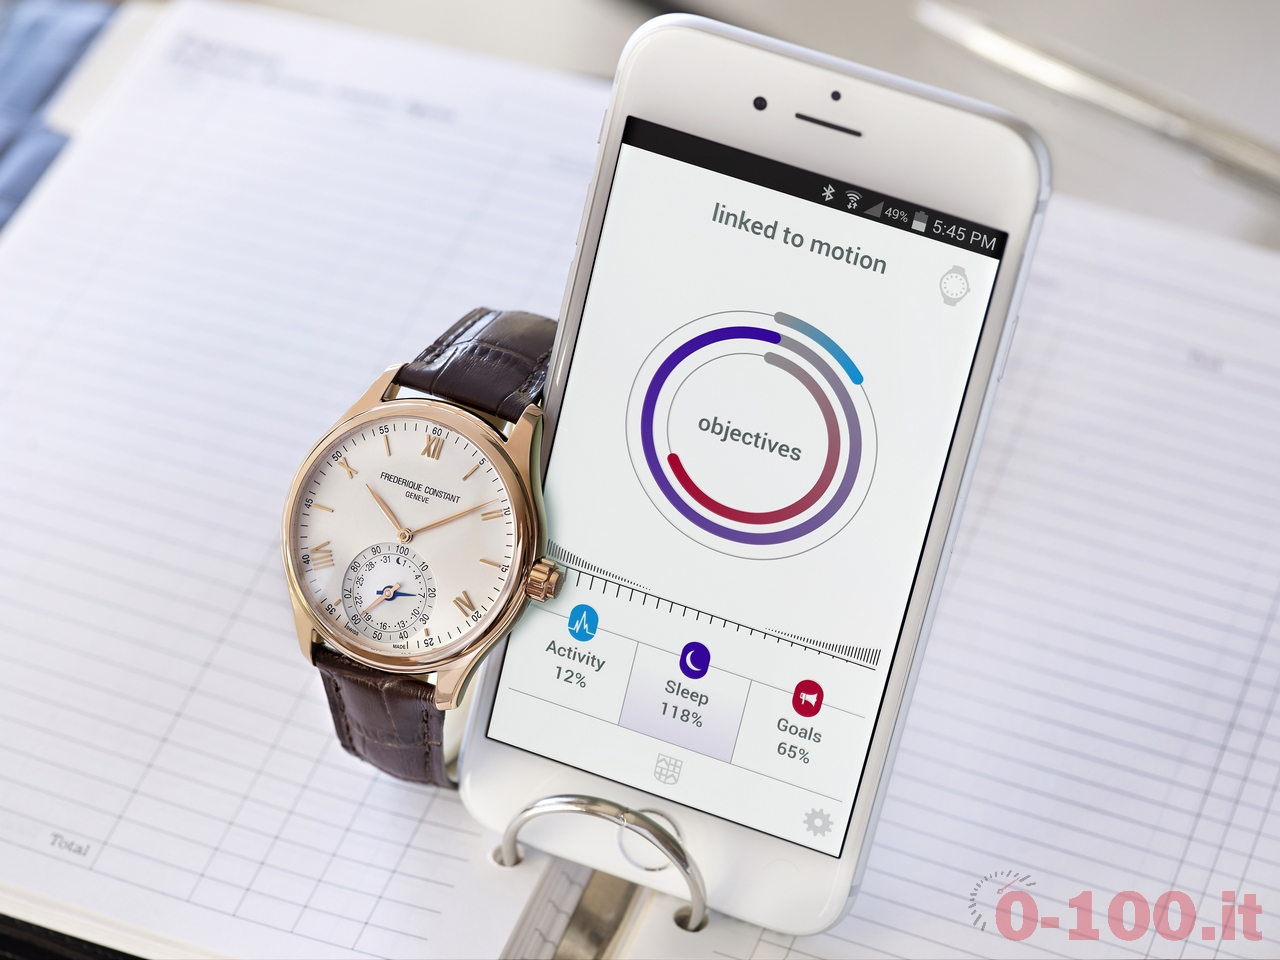 anteprima-baselworld-2015-frederique-constant-the-swiss-horological-smartwatch_0-100_3